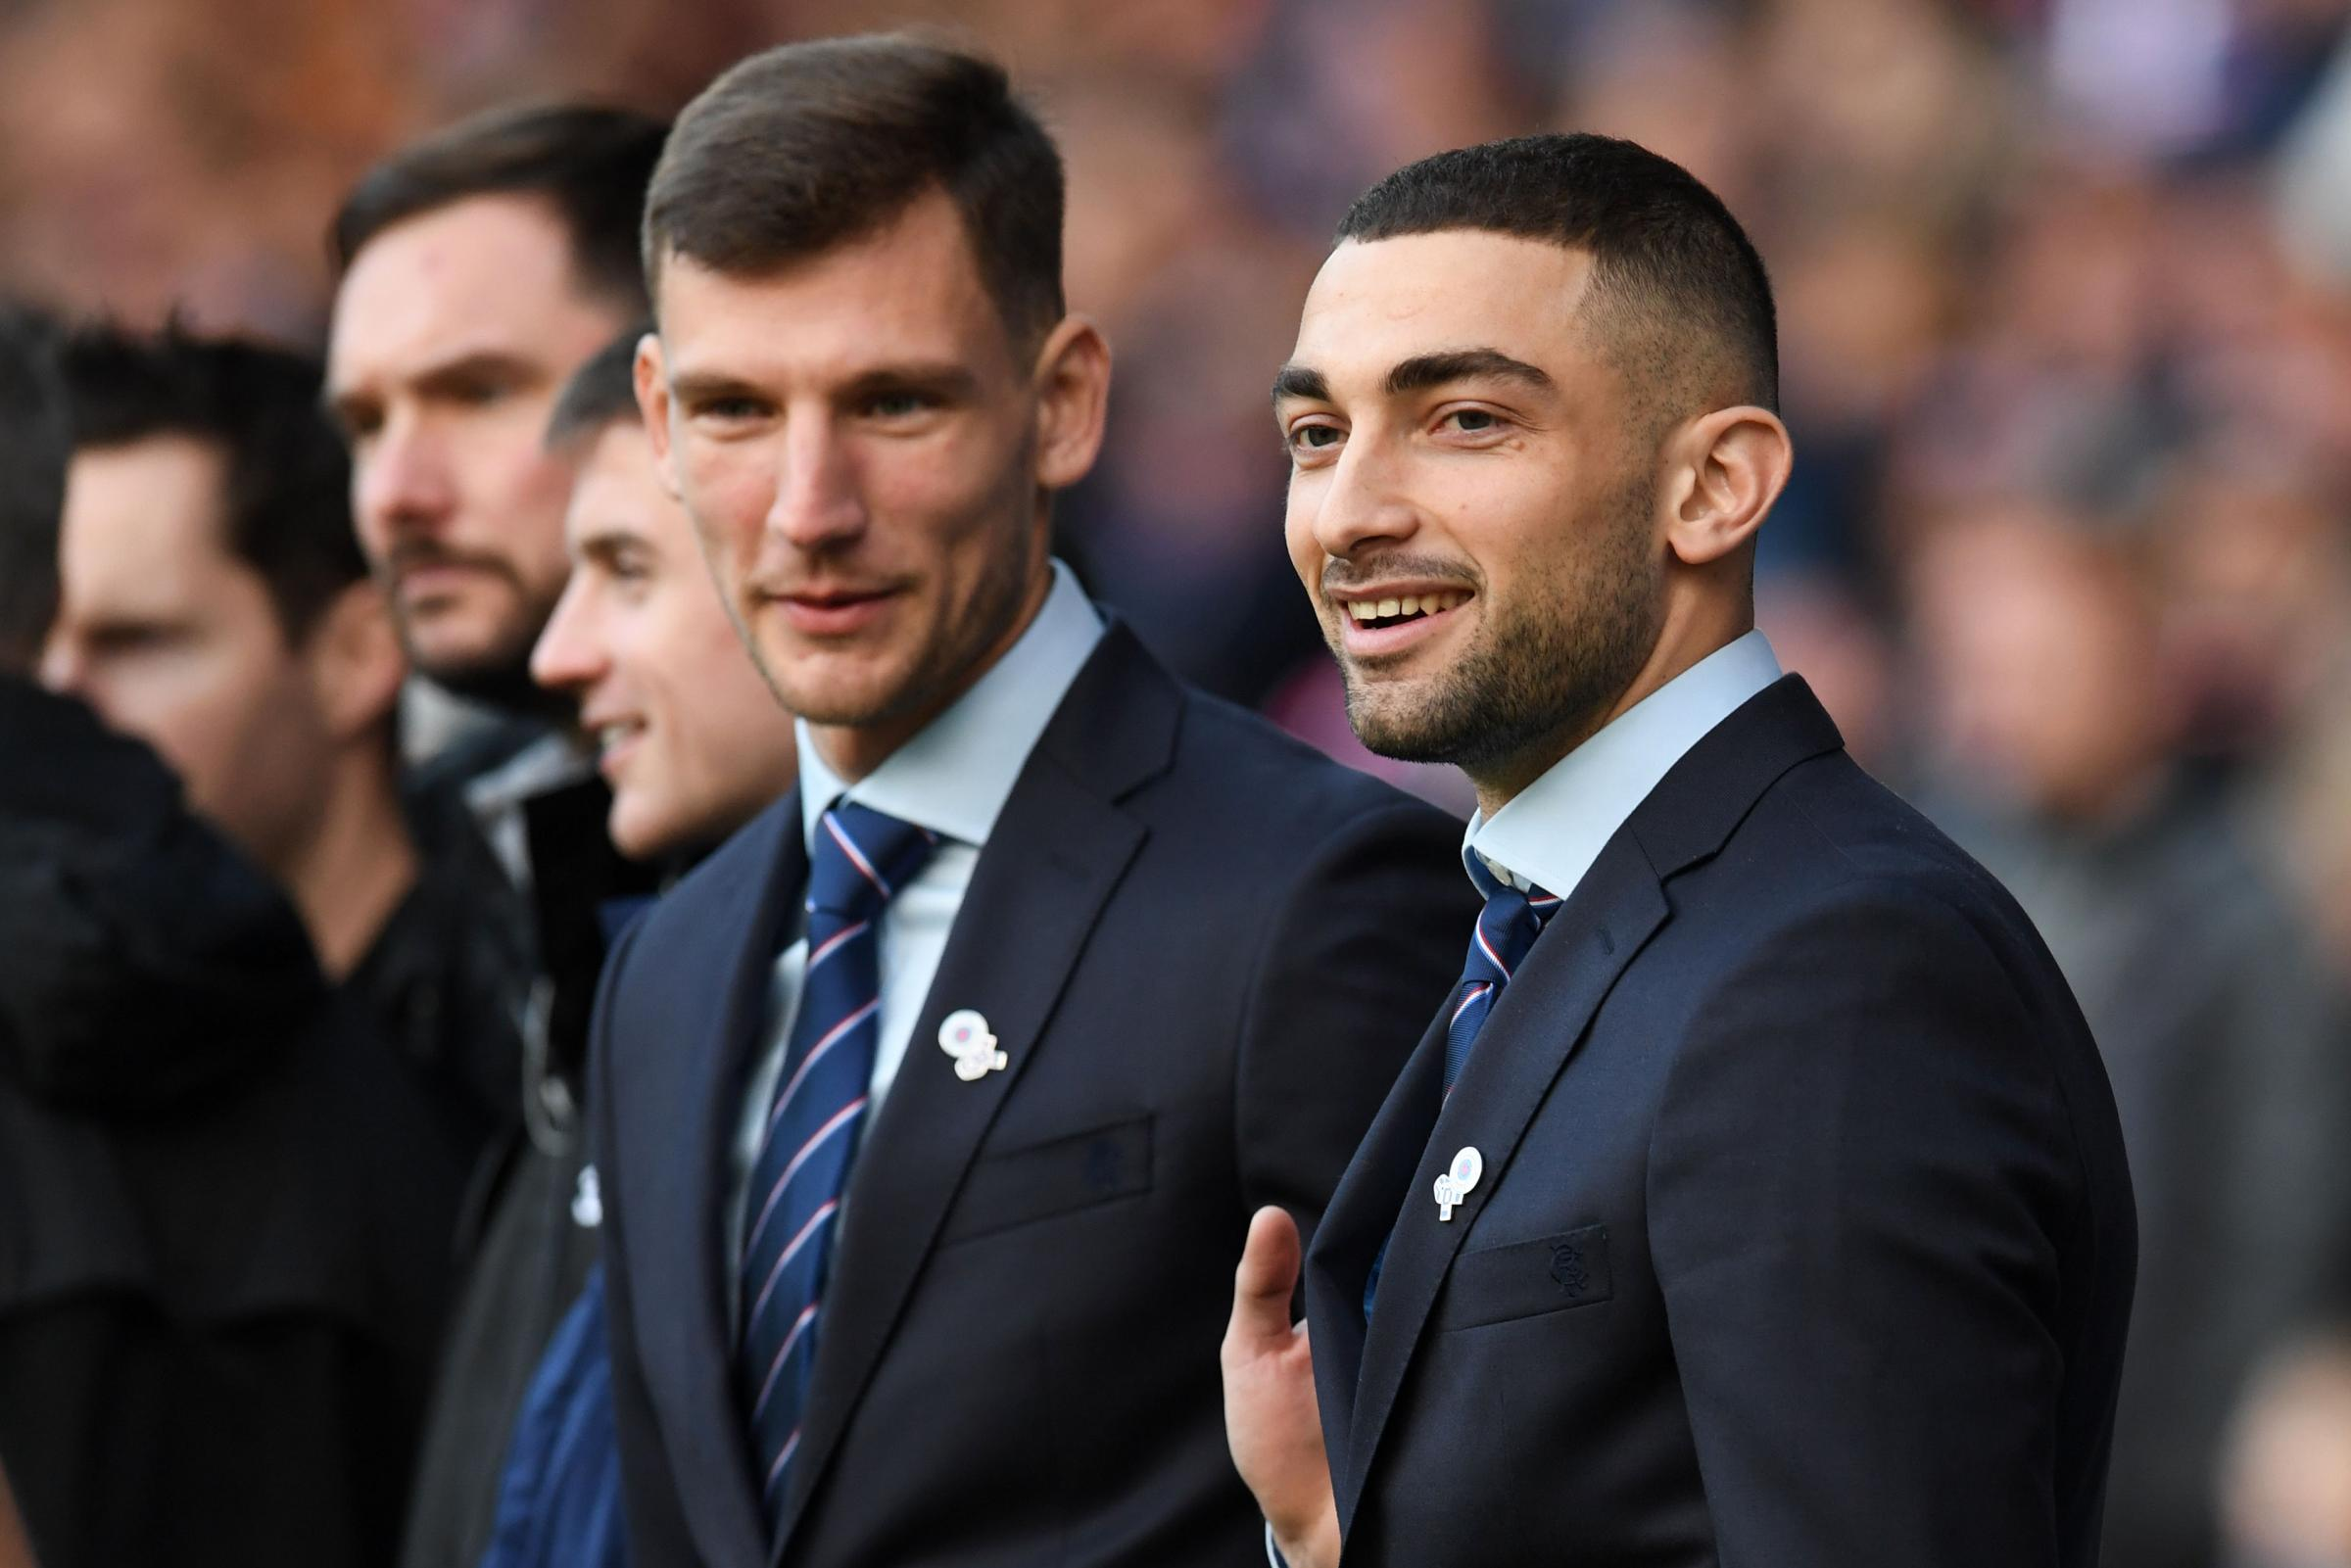 Steven Gerrard challenges Borna Barisic and Eros Grezda to make their mark at Rangers